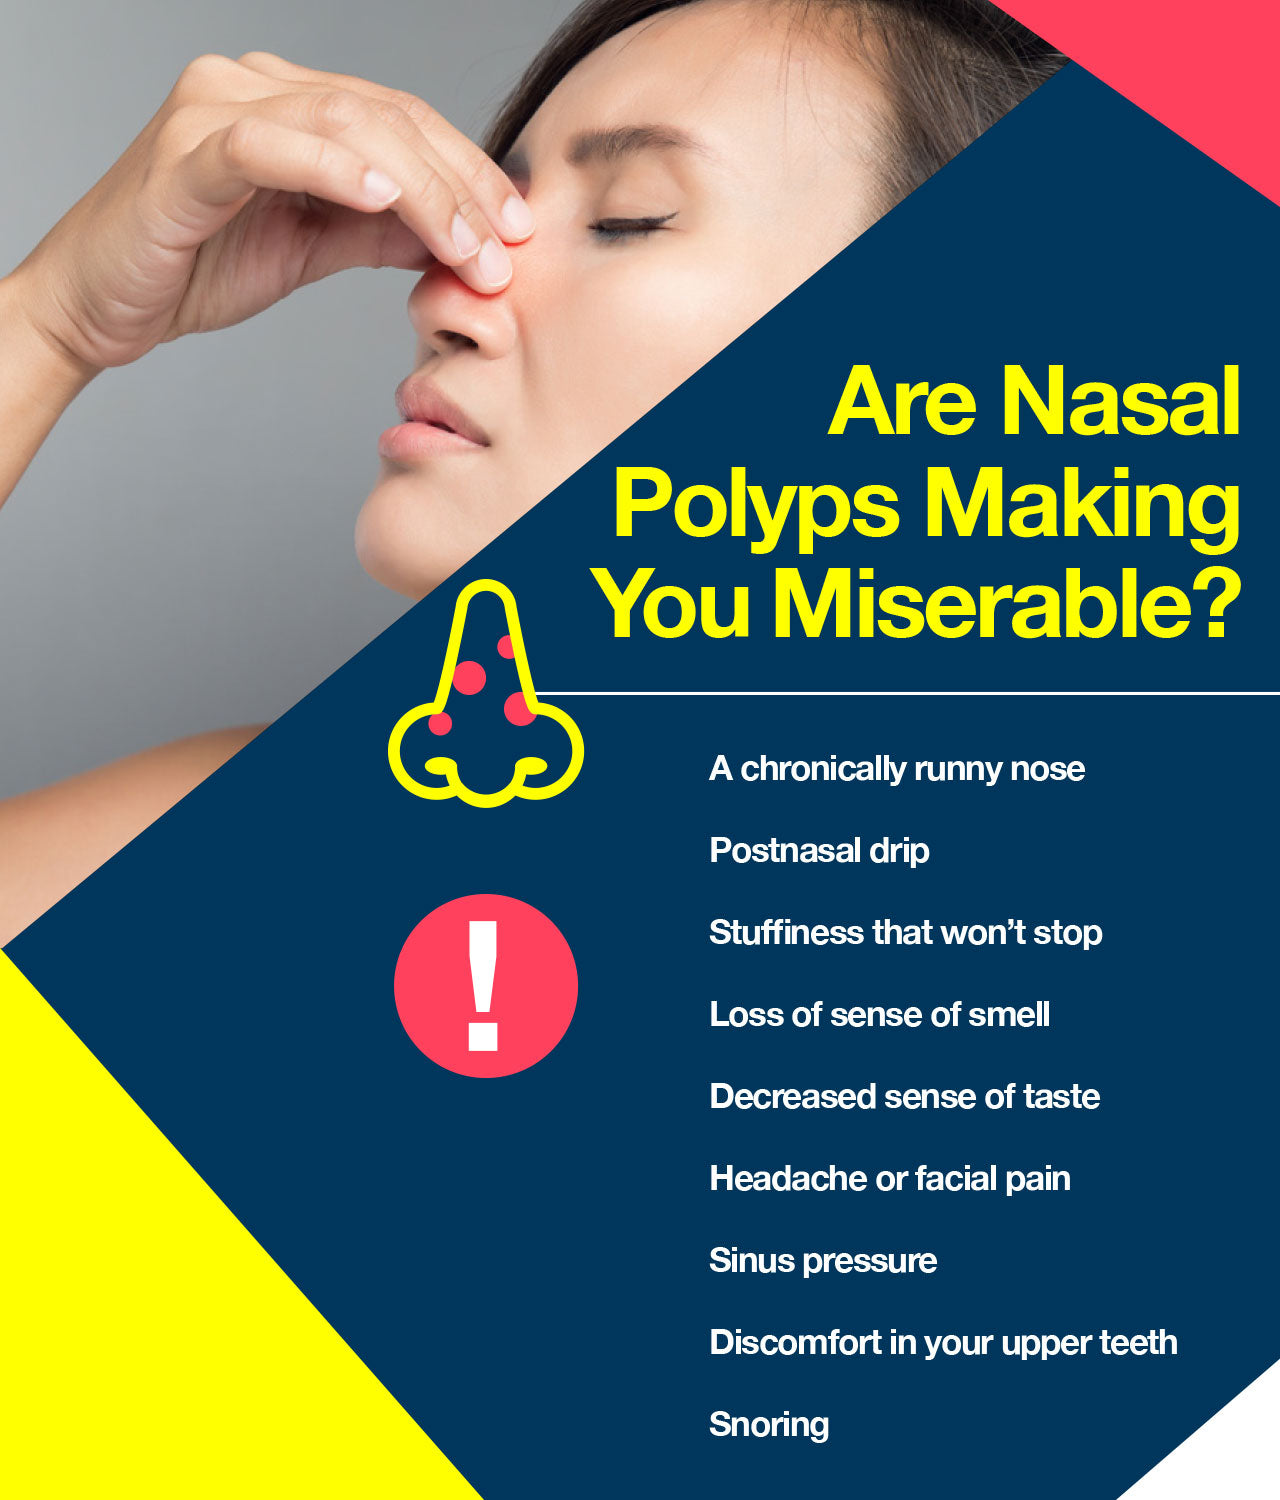 symptoms of nasal polyps